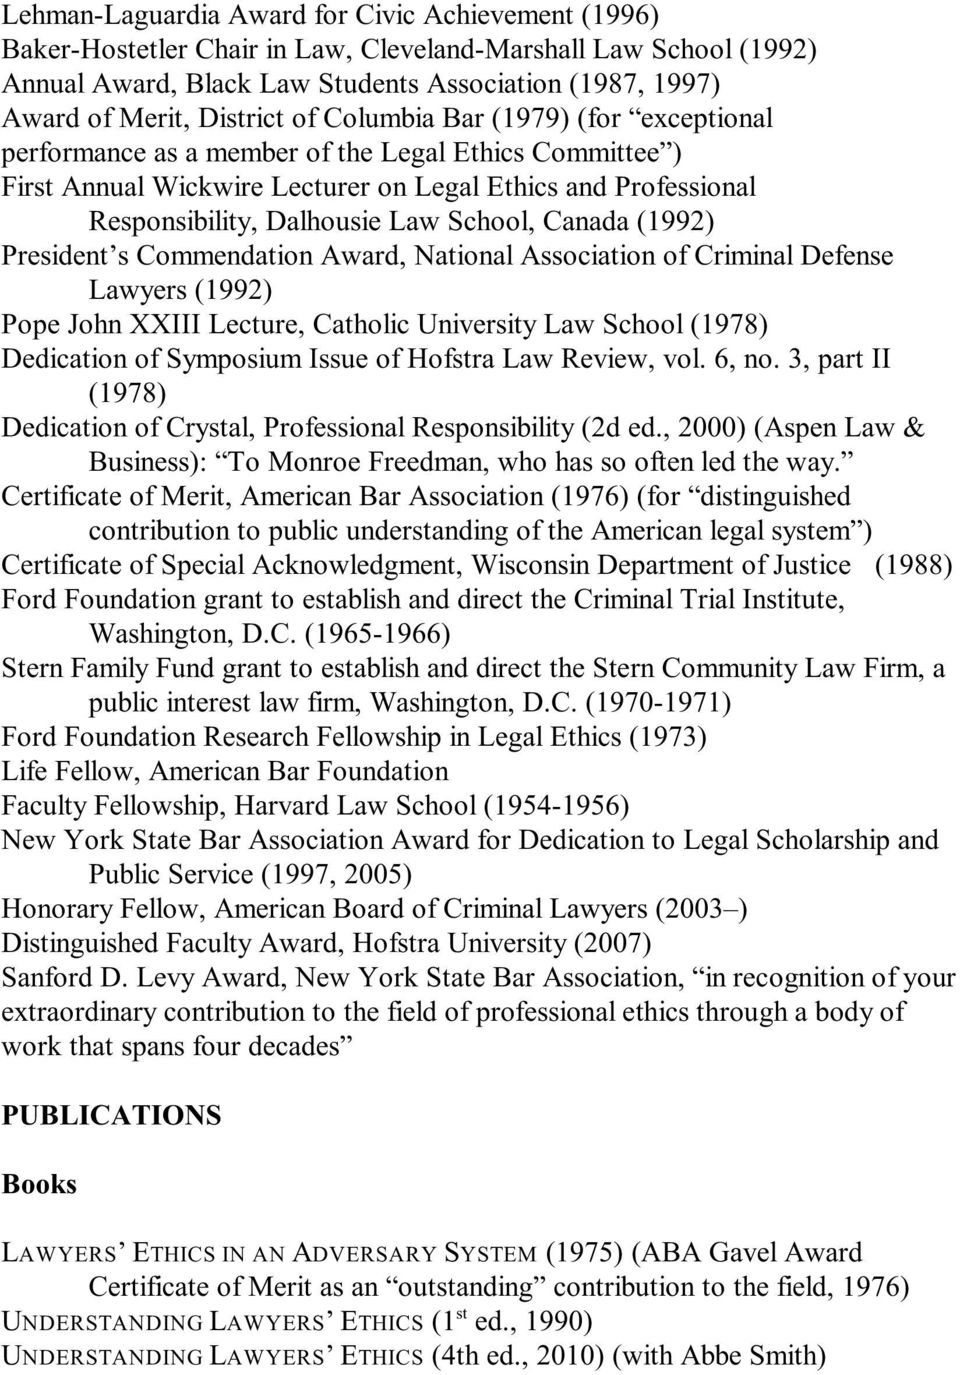 School, Canada (1992) President s Commendation Award, National Association of Criminal Defense Lawyers (1992) Pope John XXIII Lecture, Catholic University Law School (1978) Dedication of Symposium